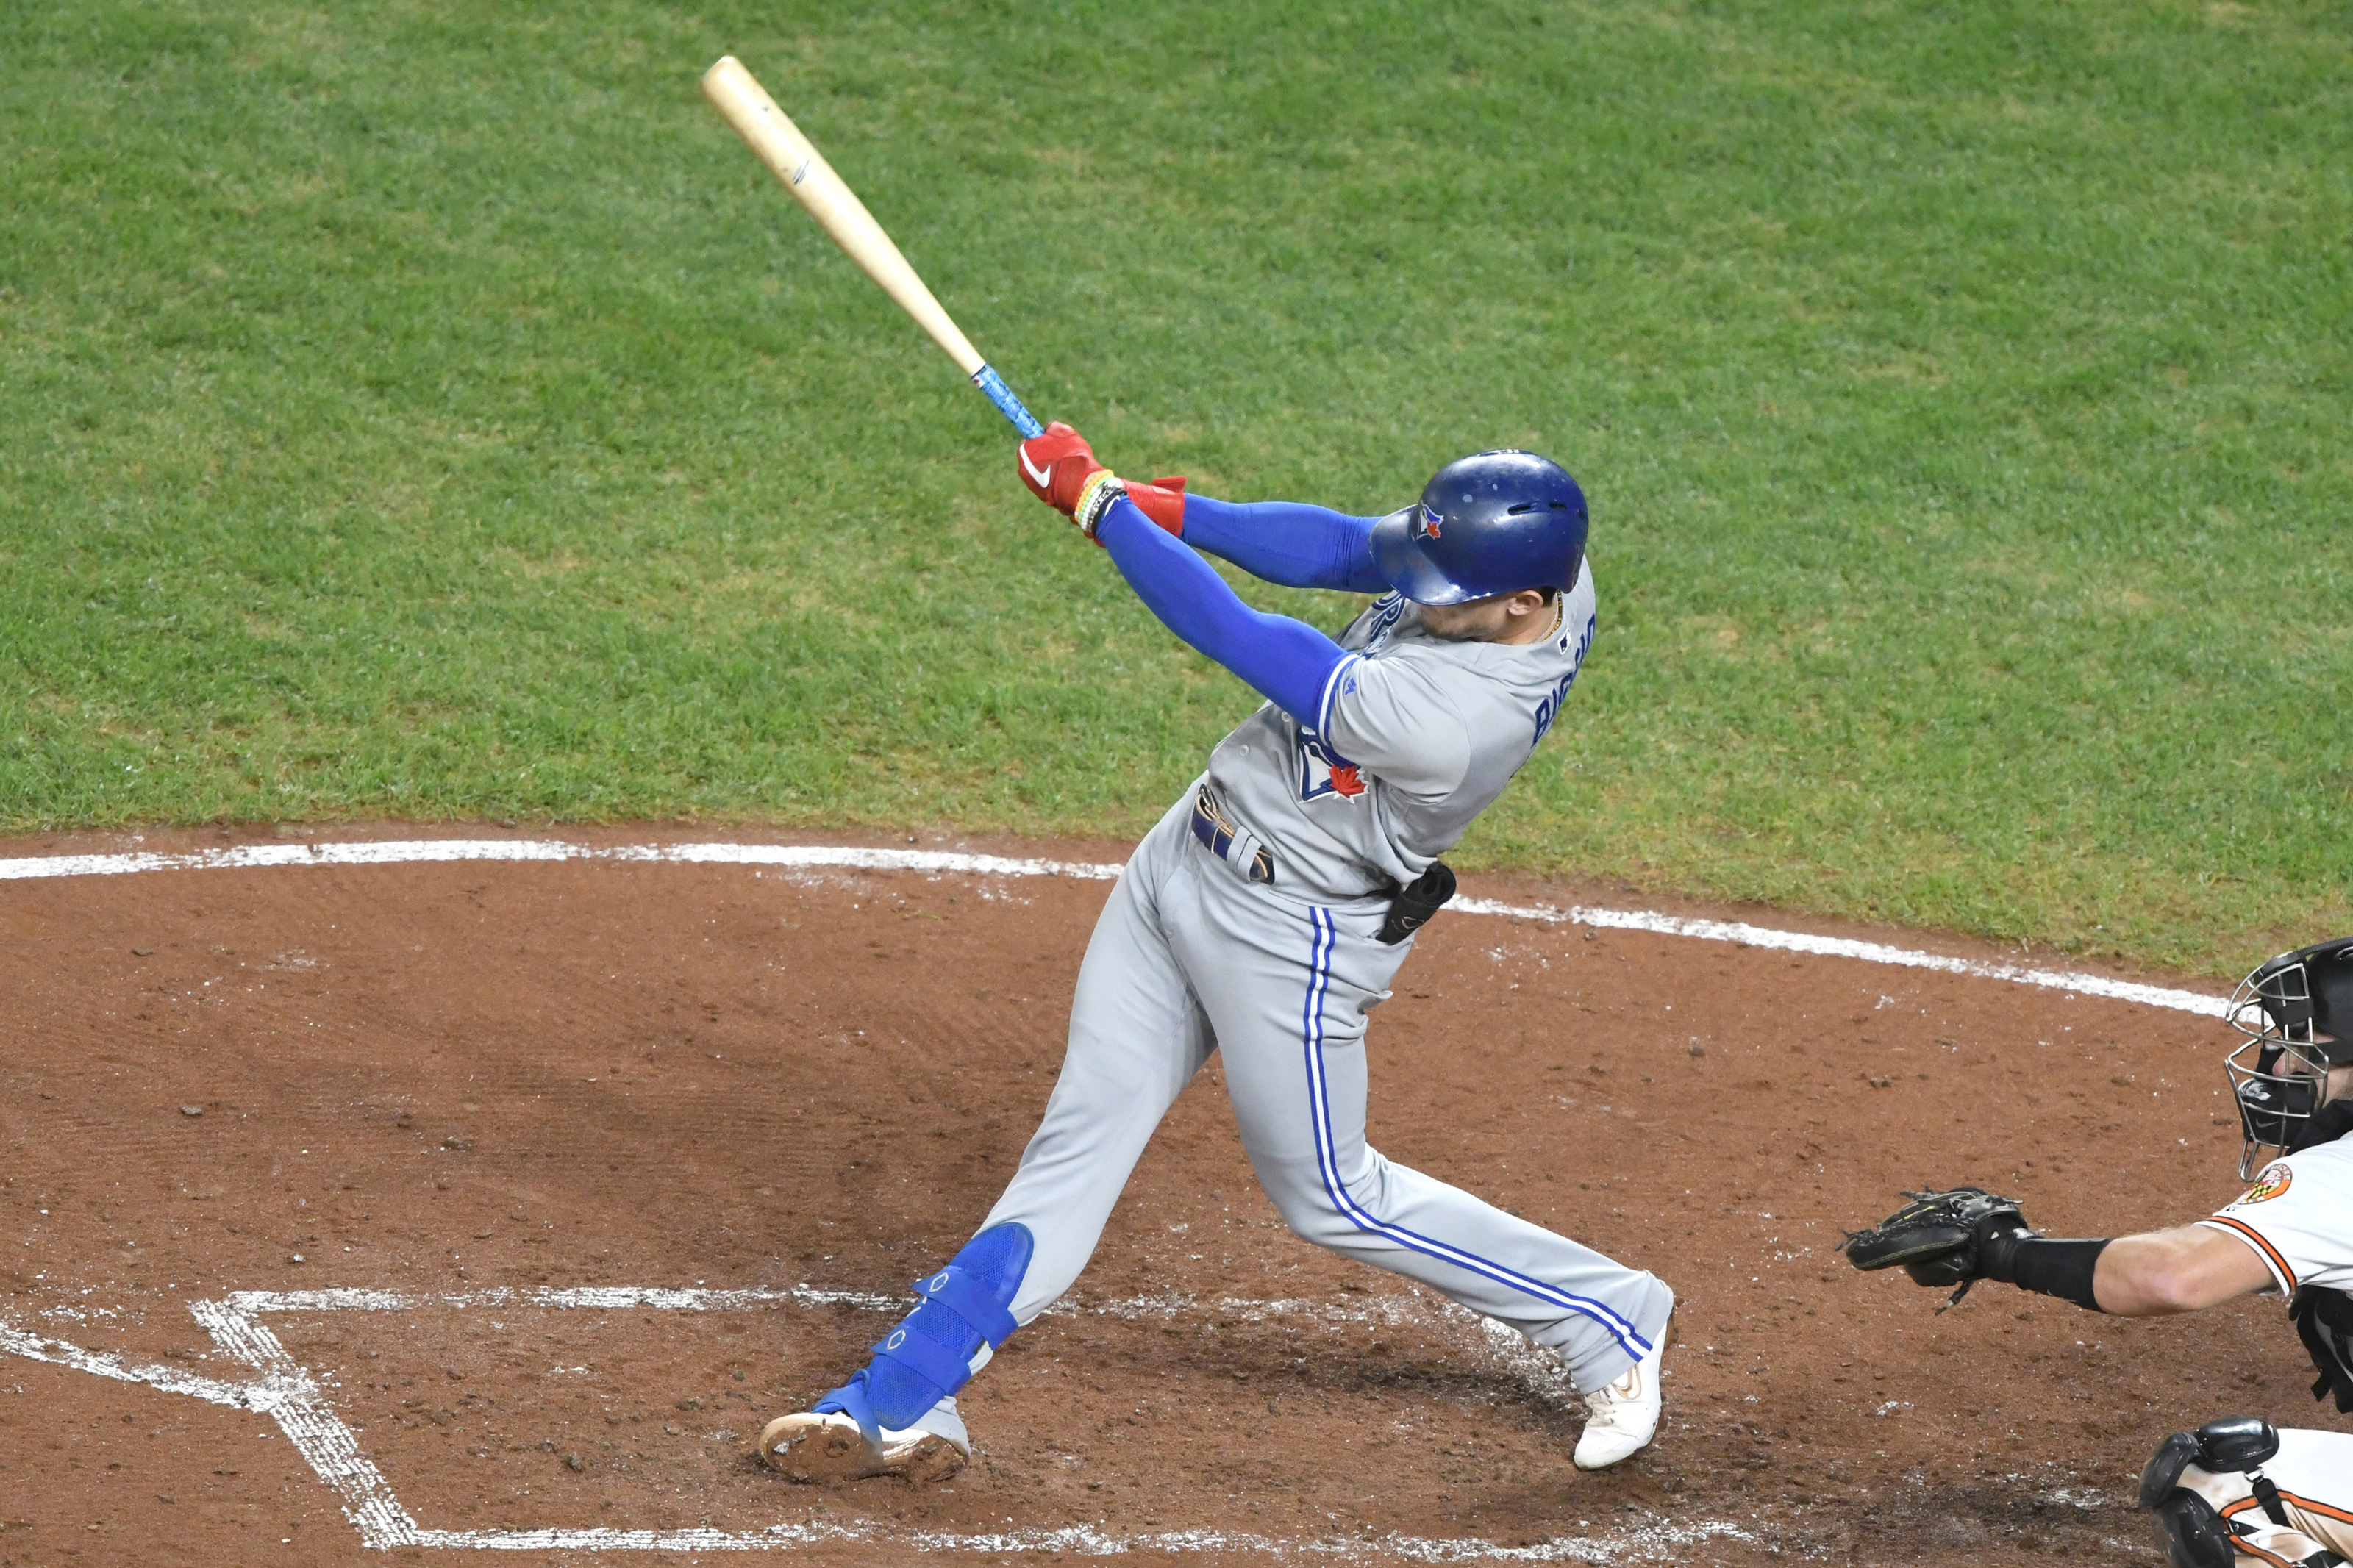 Toronto Blue Jays: Tinkering with the batting order to produce more runs